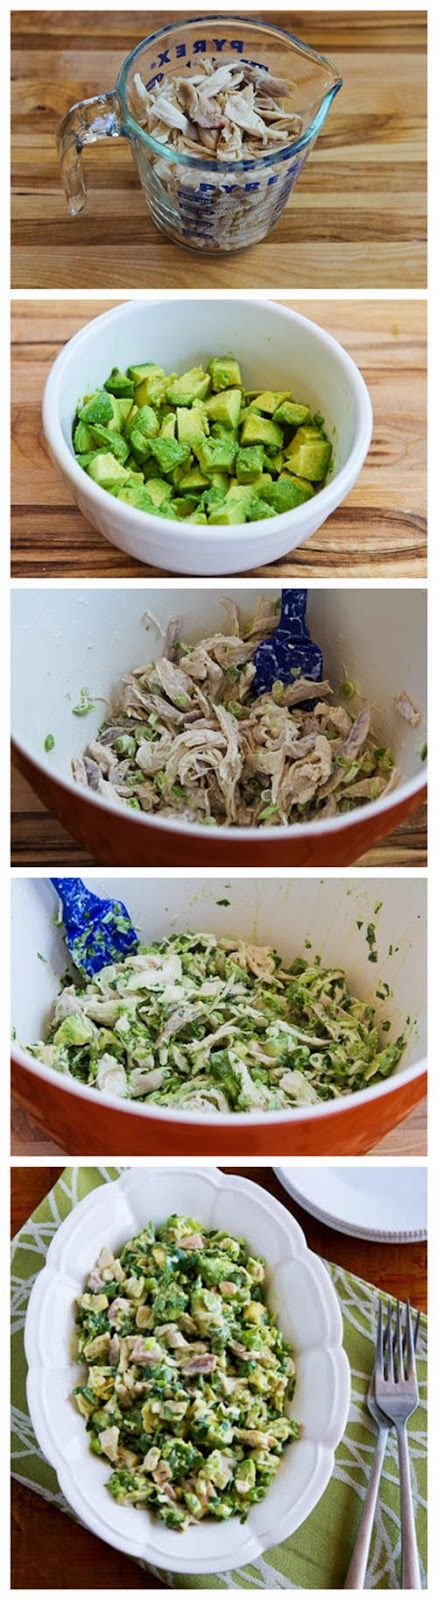 Chicken and Avocado Salad with Lime. 2 cups cooked chicken, shredded into large pieces, 2 medium avocados diced, 1 T + 1 T fresh squeezed lime juice salt, to taste, 1/4 cup thinly sliced green onion, 1/2 cup finely chopped fresh cilantro, 2 T mayo or light mayo.